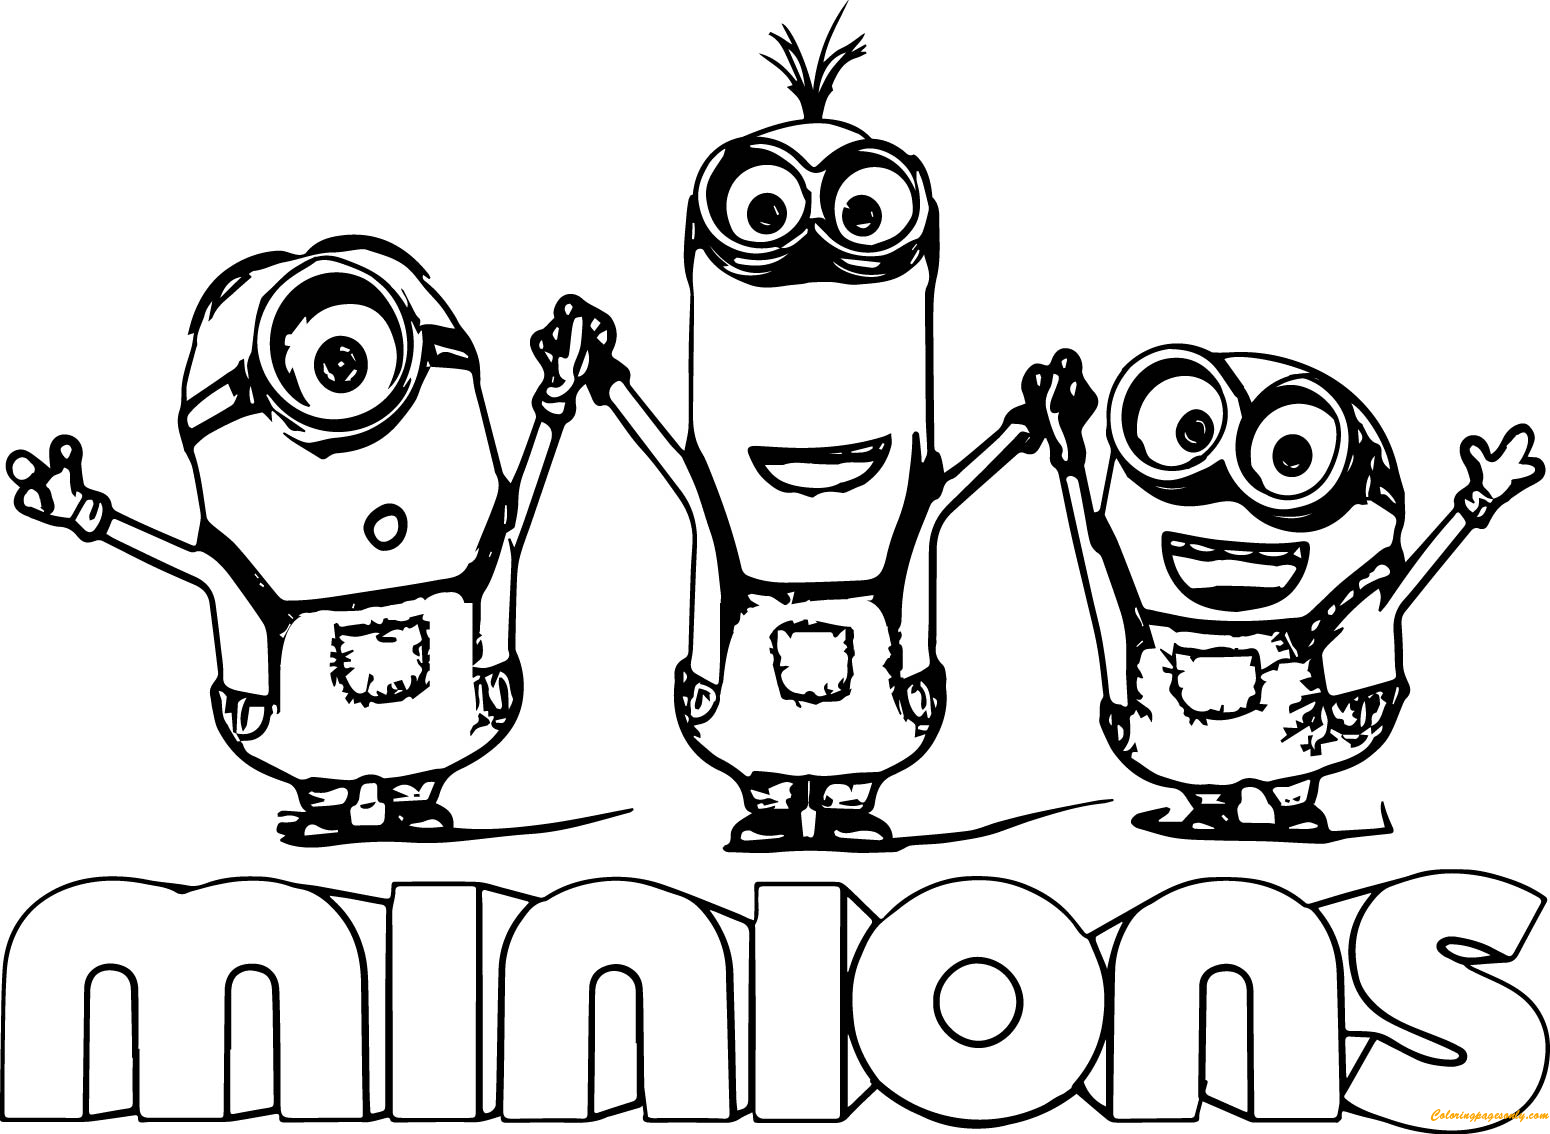 minion kevin coloring pages how to draw kevin from minions step by step characters kevin minion pages coloring